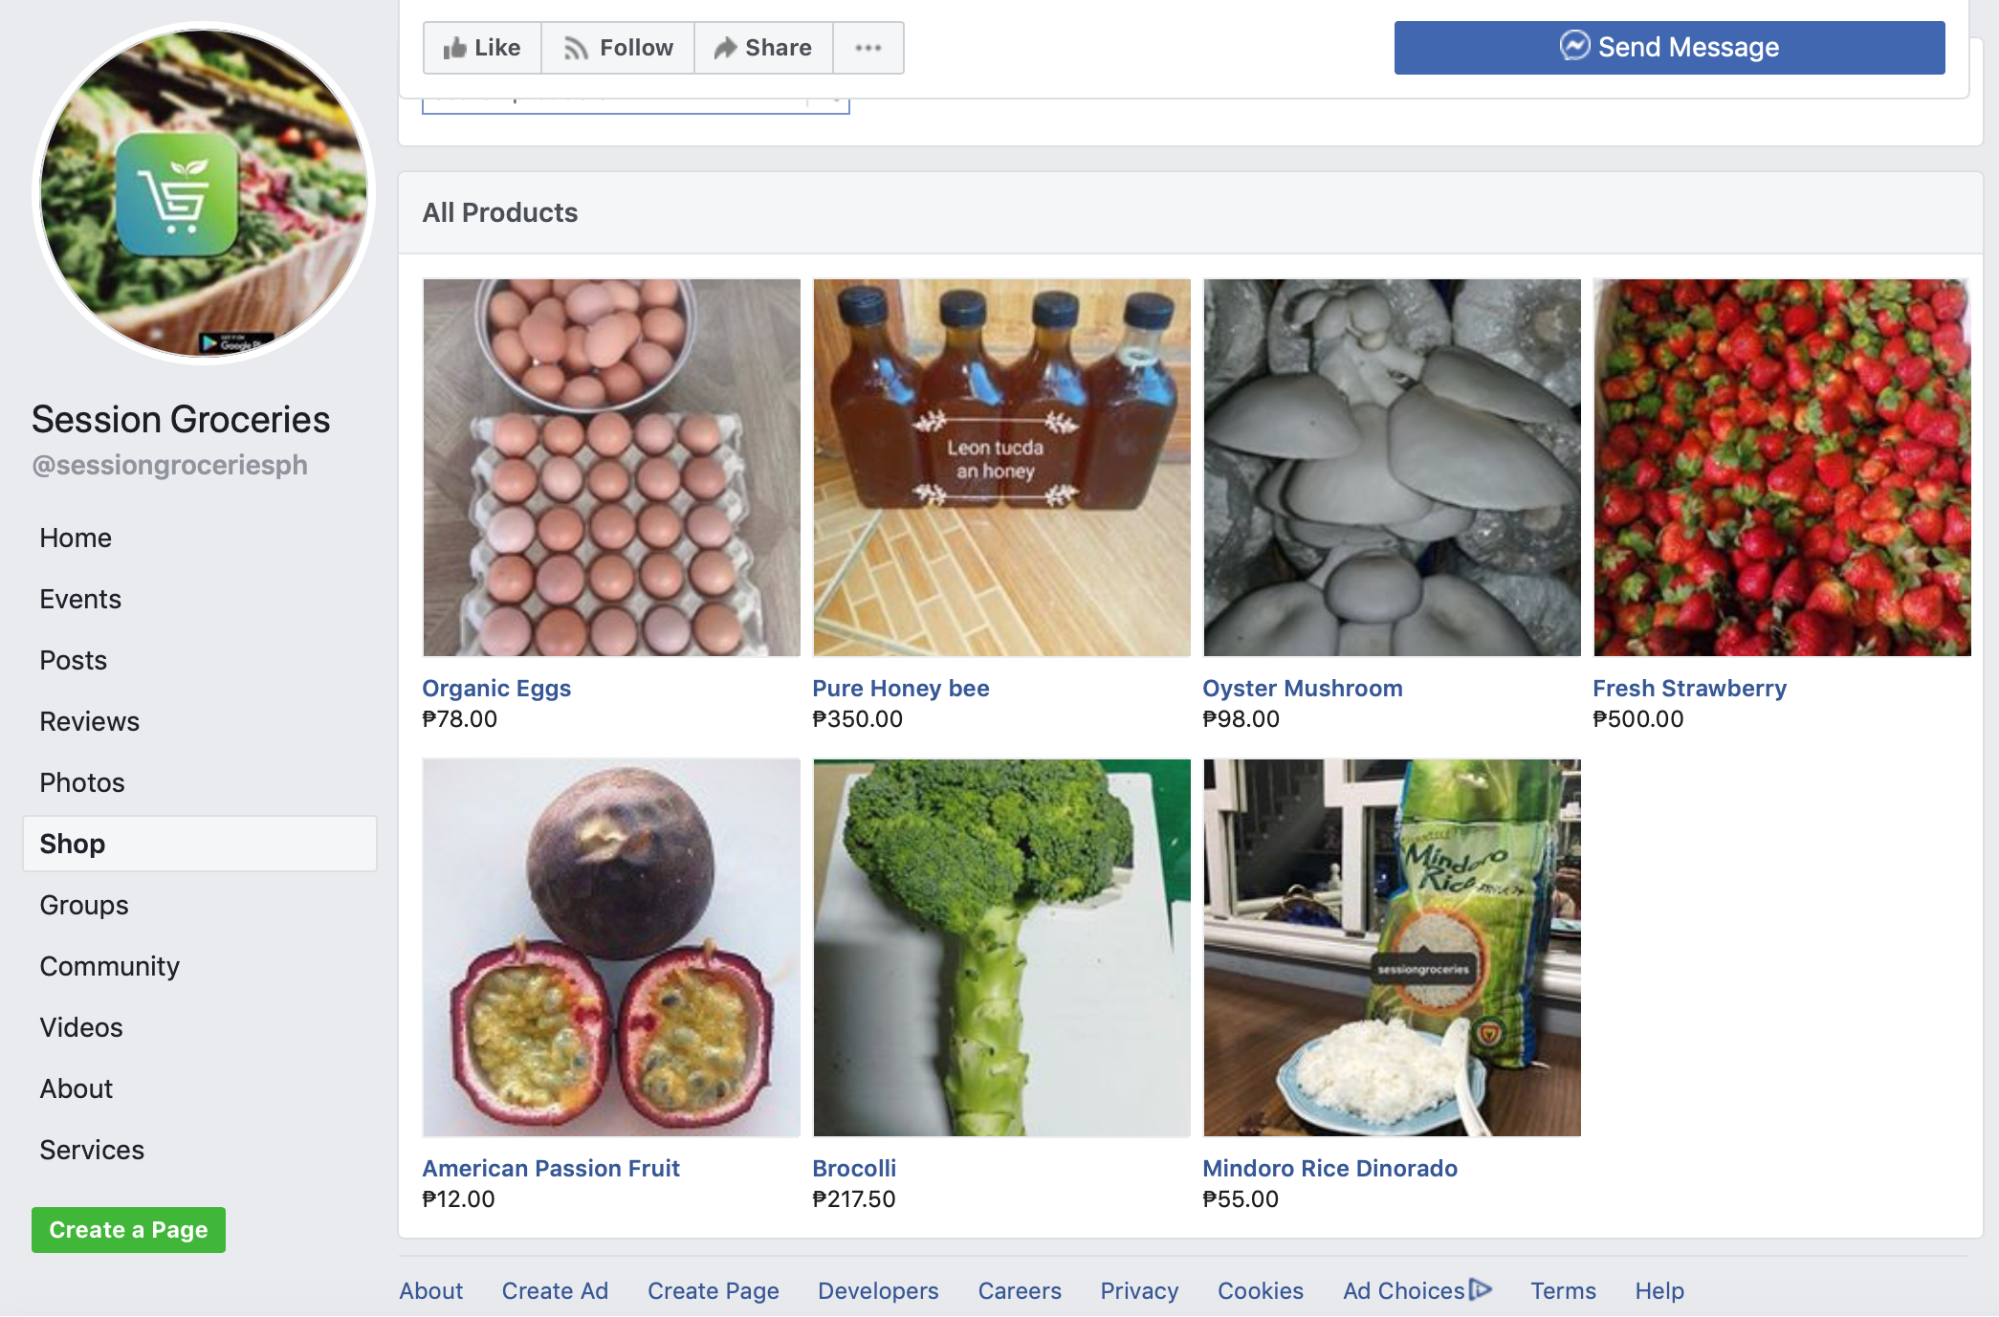 screenshot of the Shop tab on Session Groceries' Facebook page